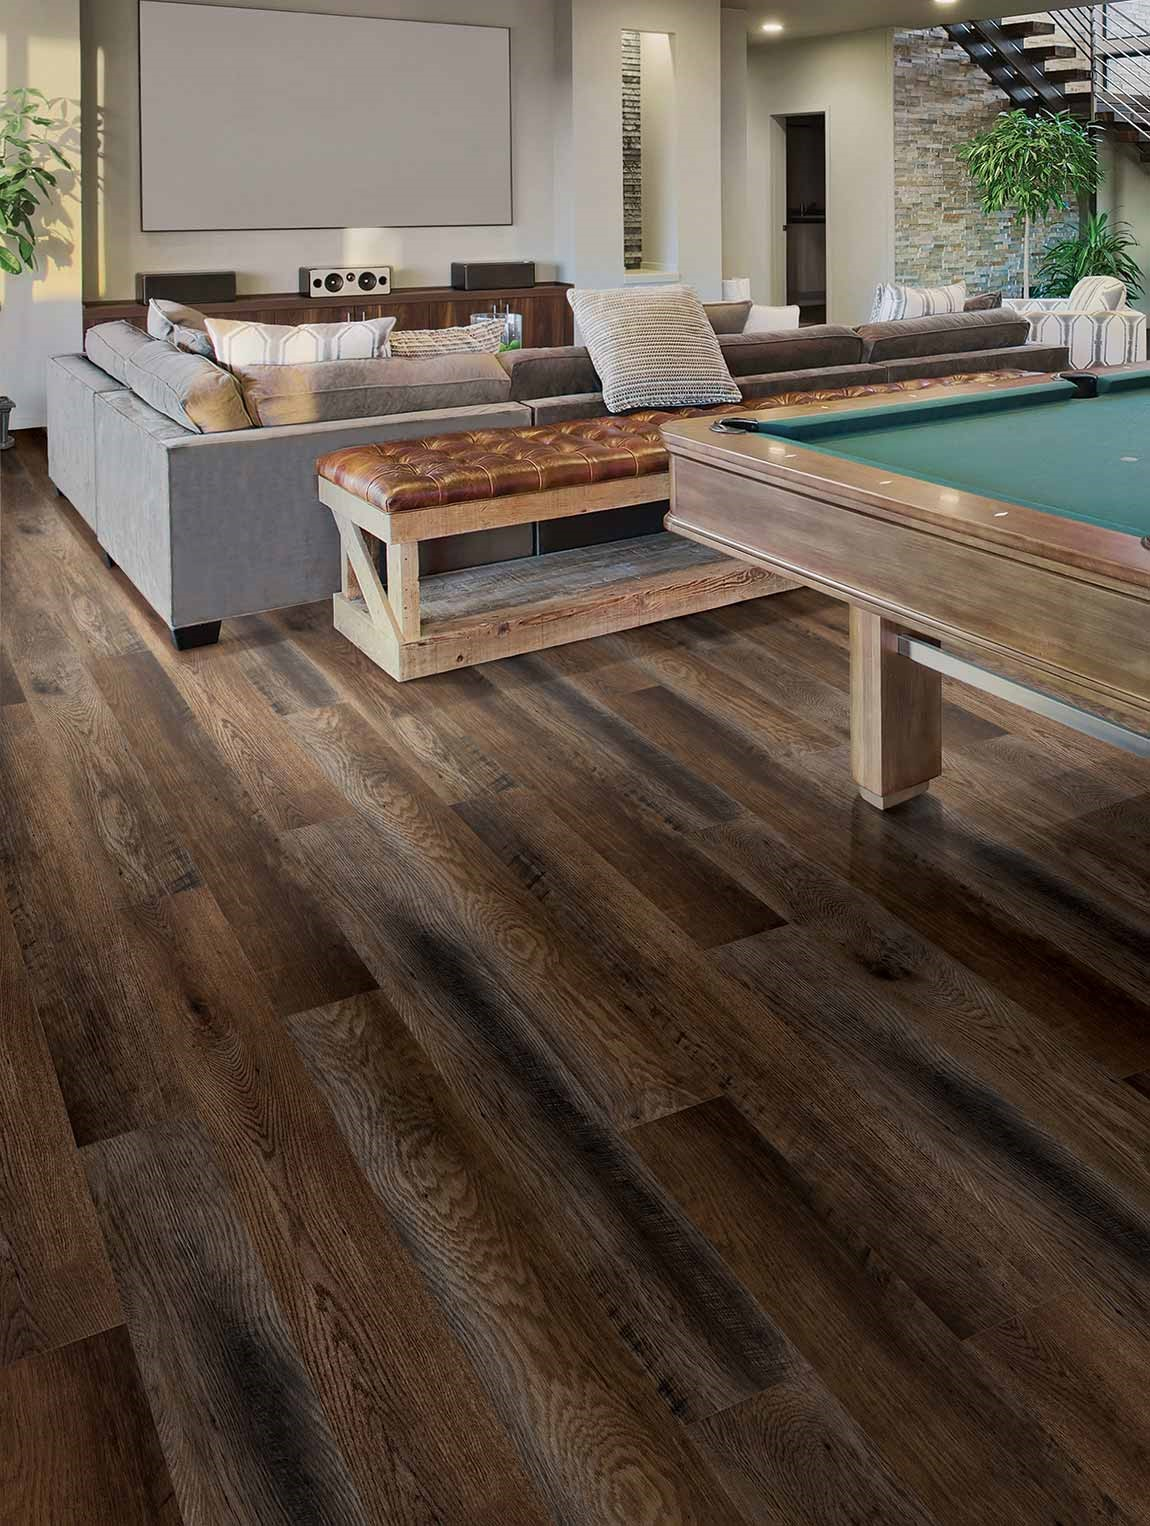 living room with couch and pool table vinyl wood look flooring